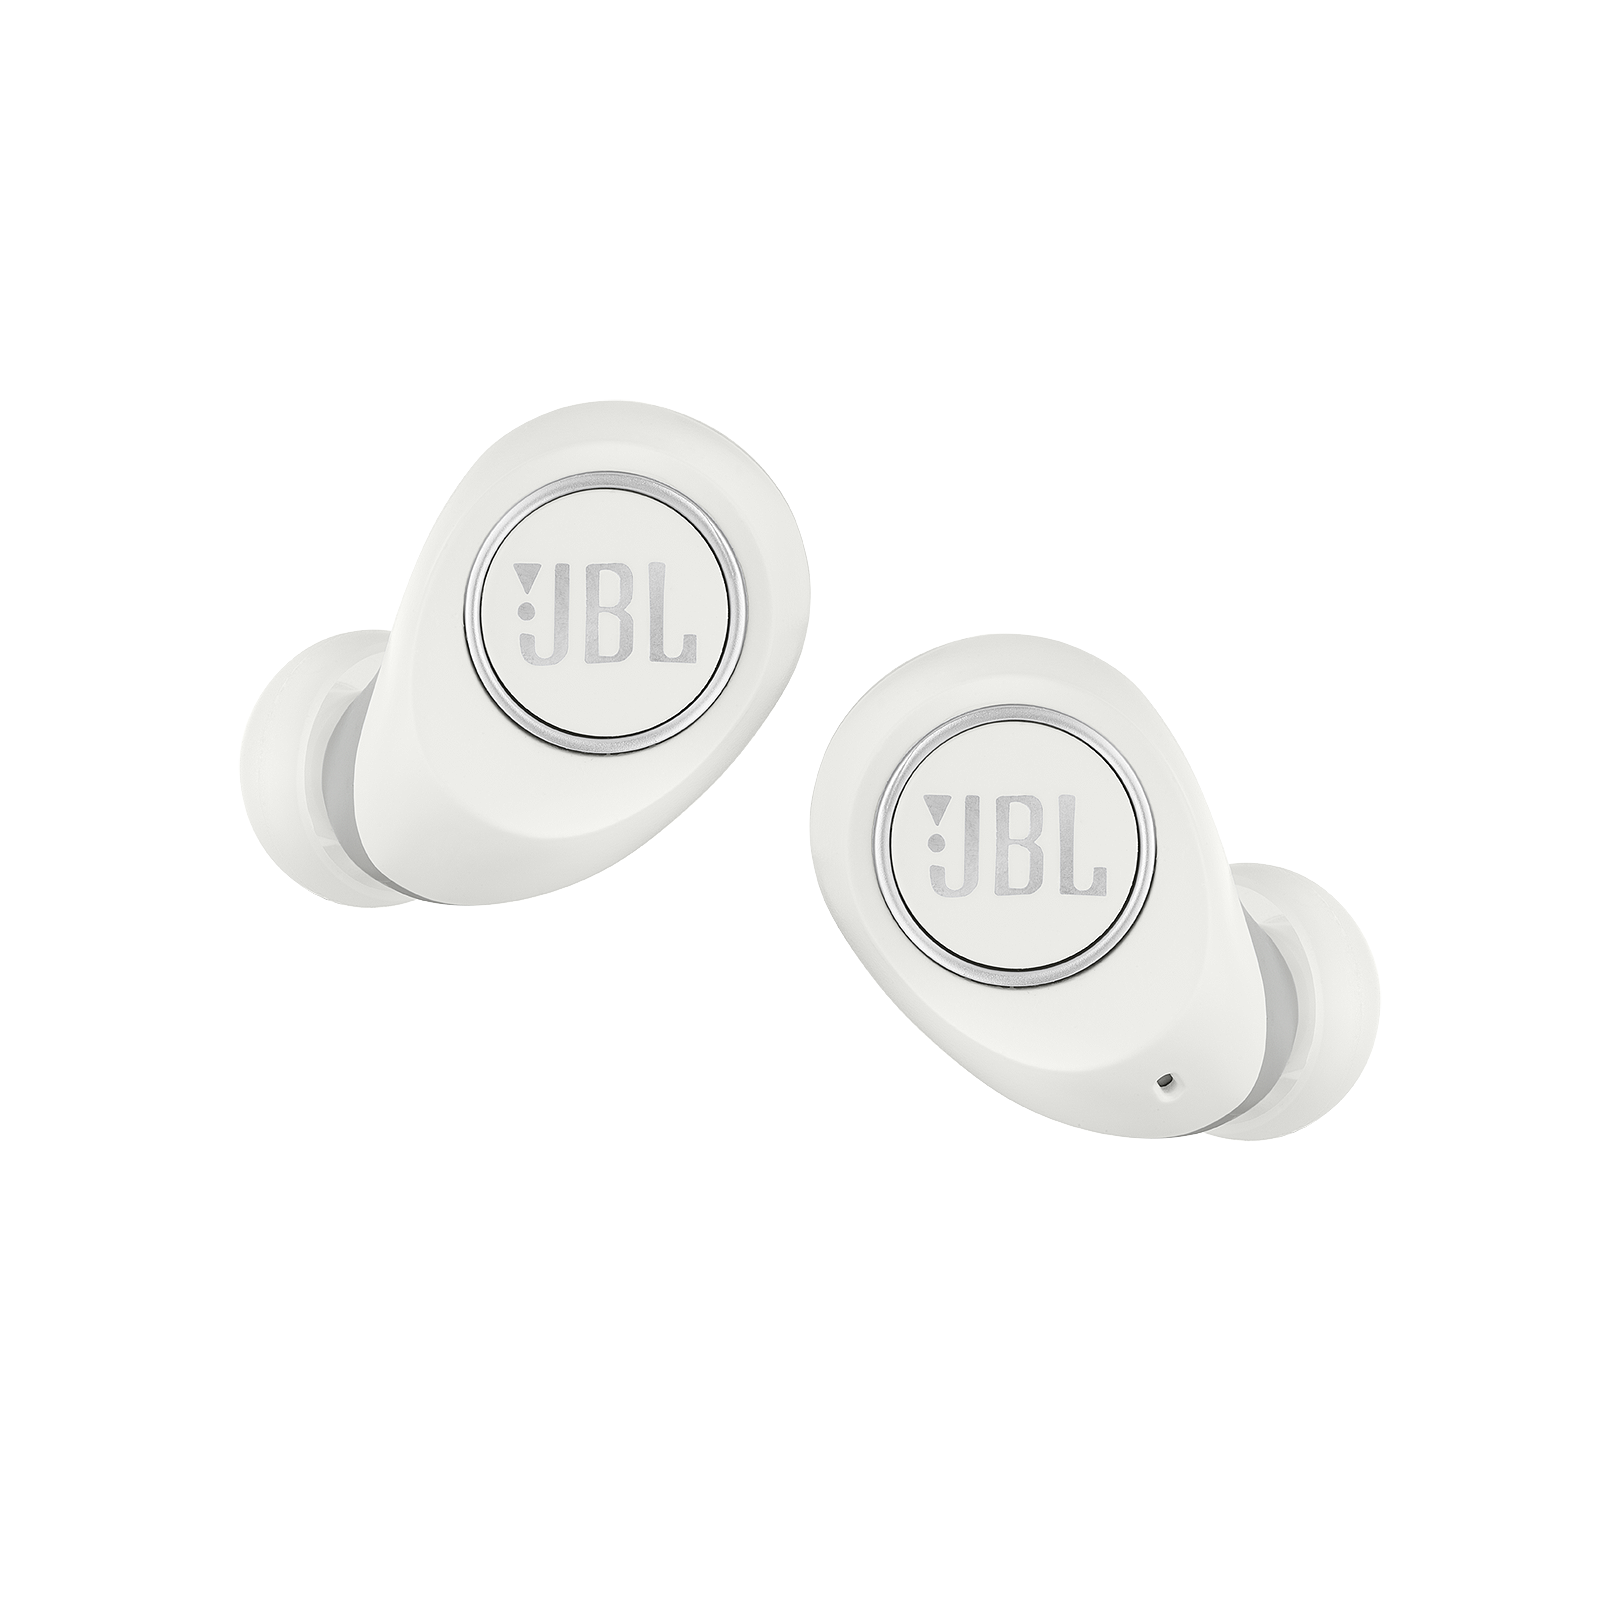 JBL Free X ear buds replacement Kit - White - JBL FREE replacement units - Detailshot 2